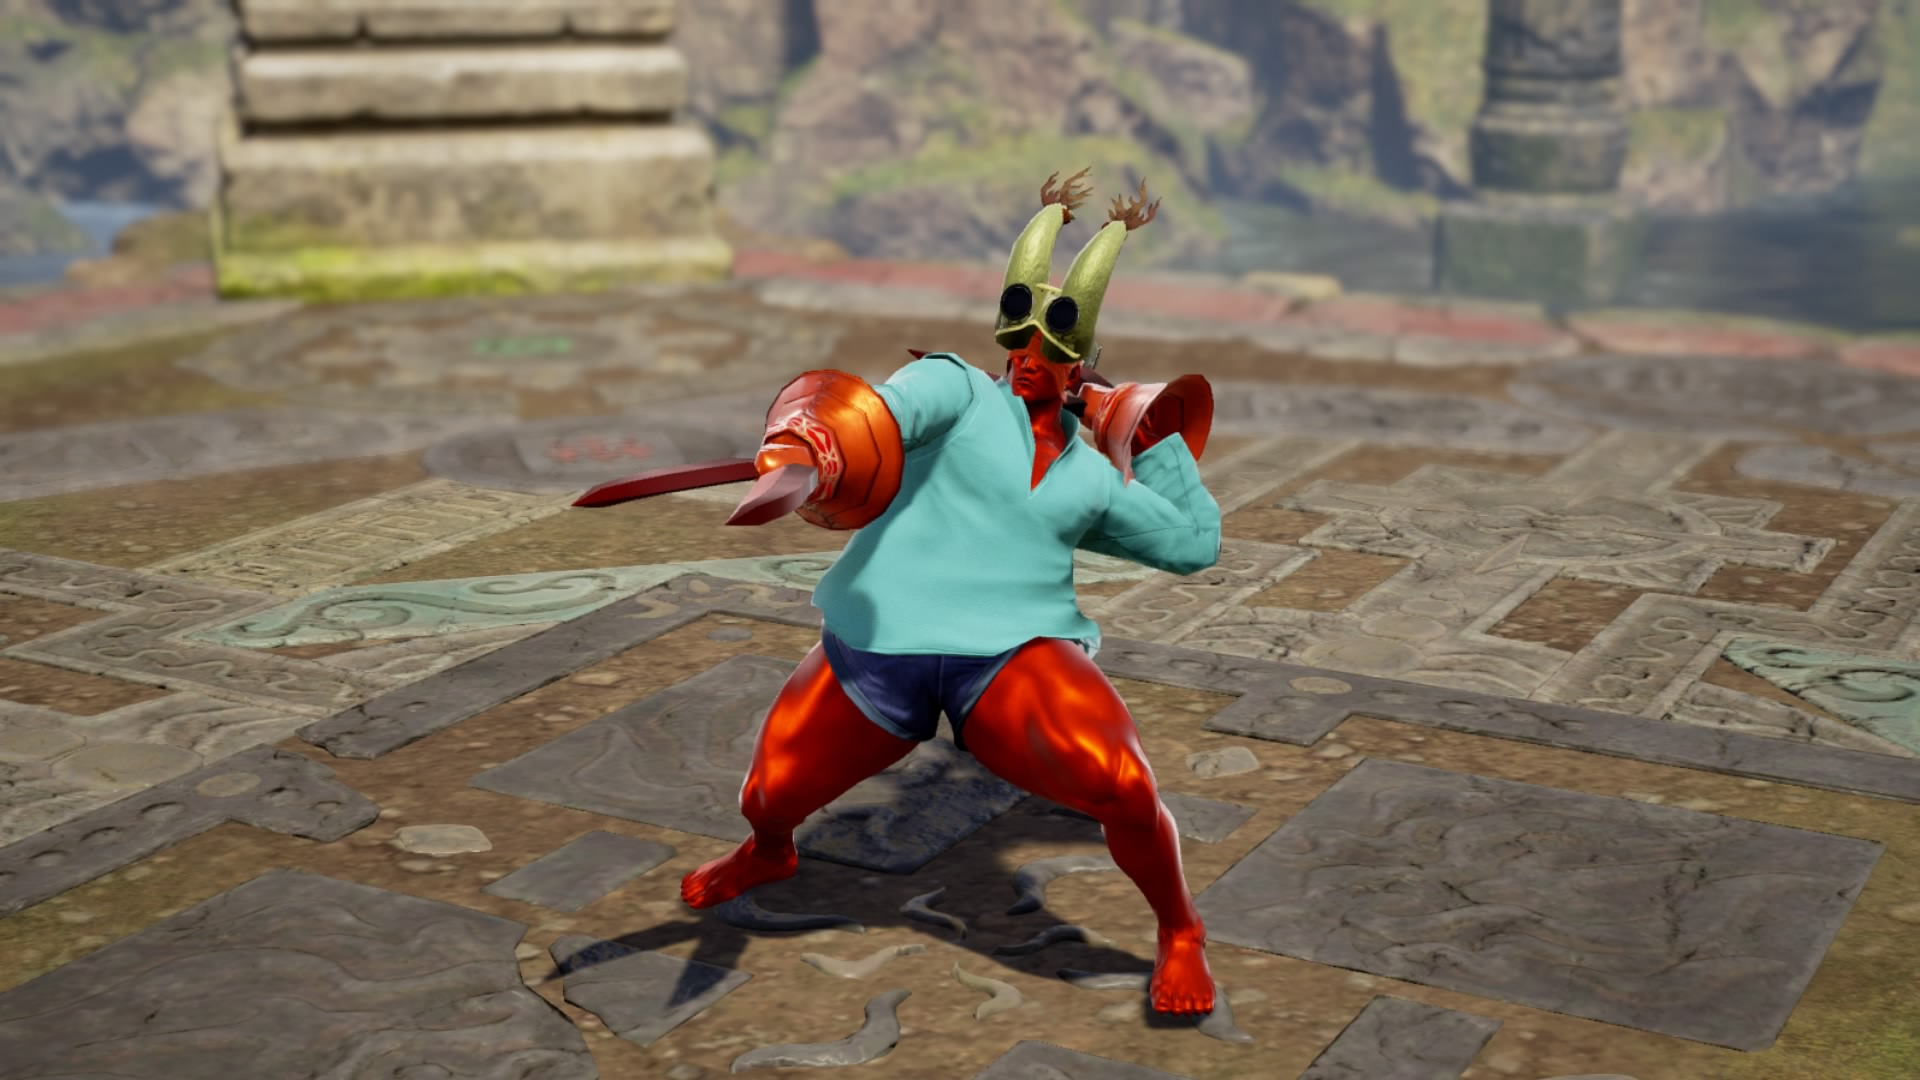 Soulcalibur 6 30 Amazing Custom Characters You Need To See Best Community Creations Gameranx